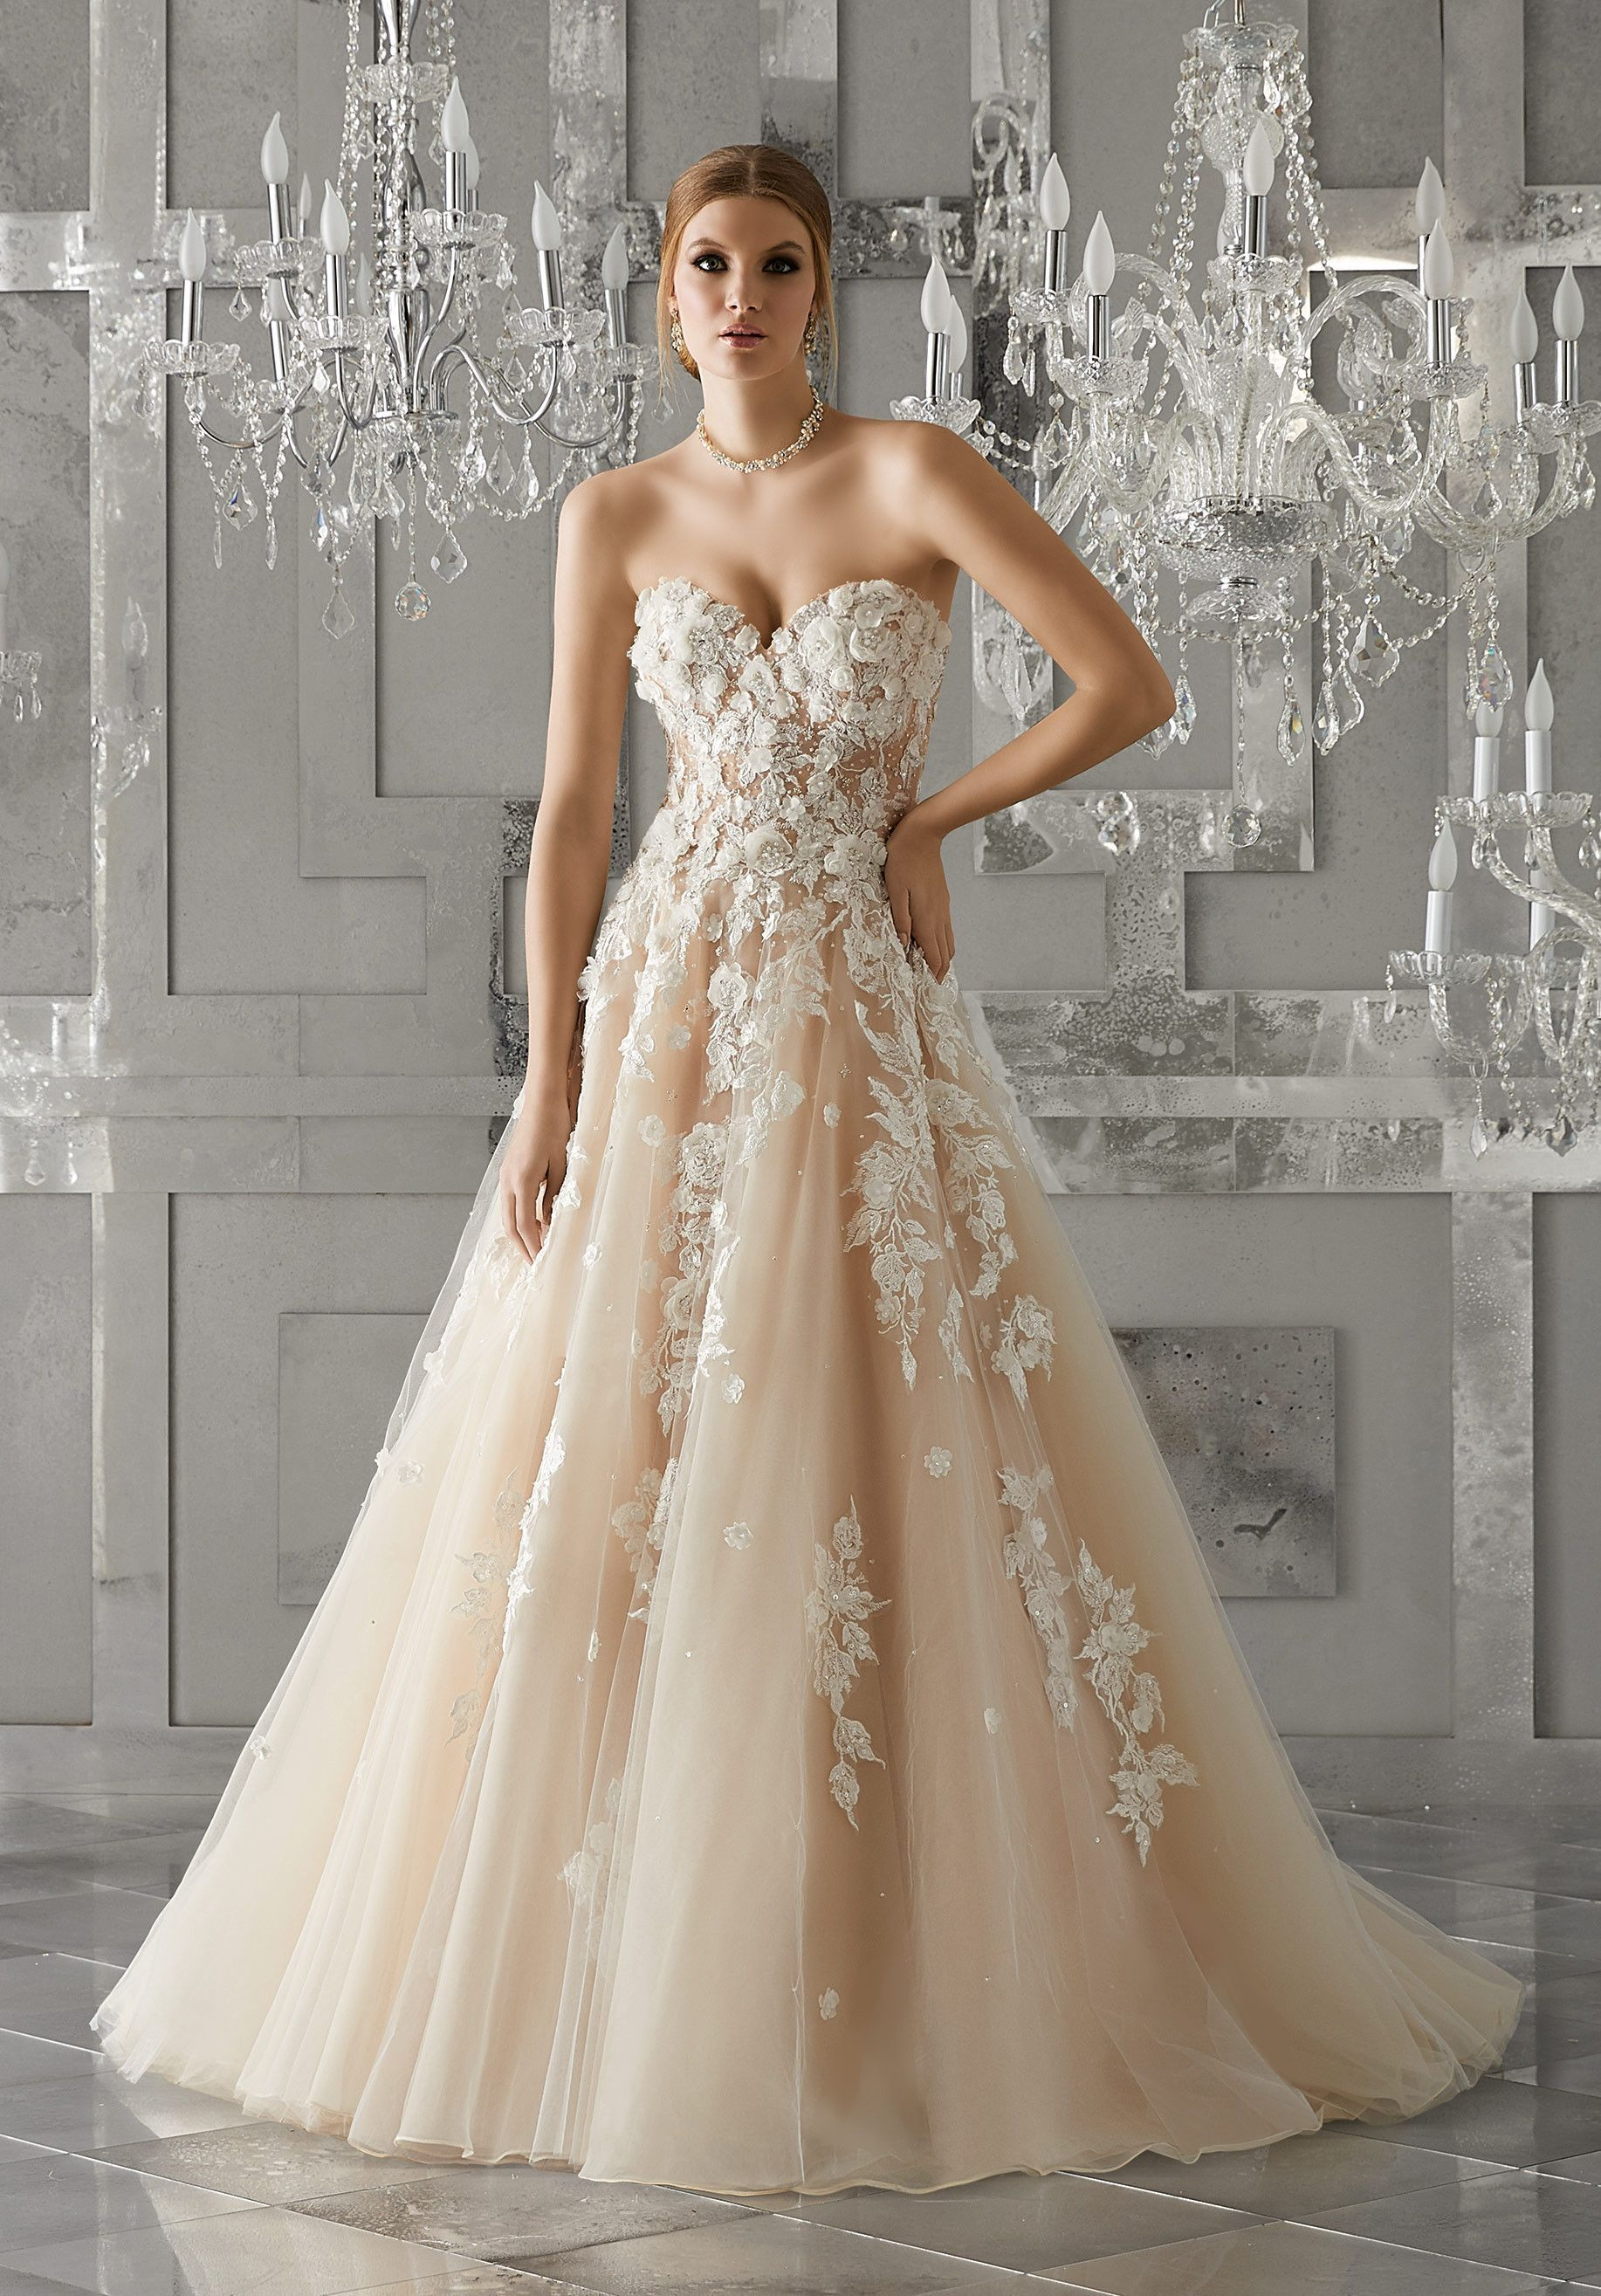 Morilee meadow all dressed up bridal gown products